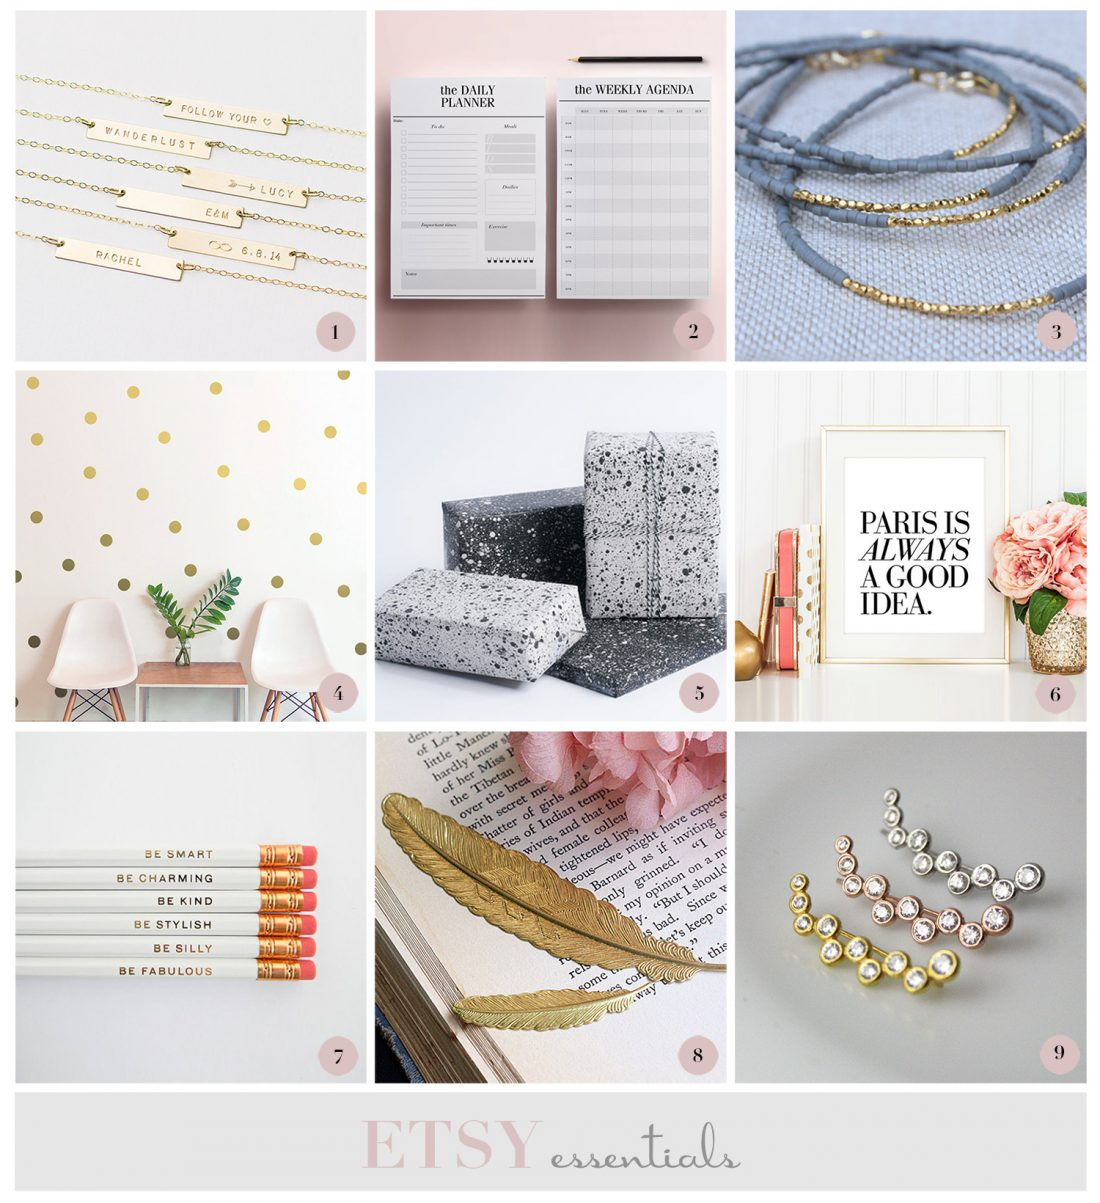 etsy-finds@2x.jpg